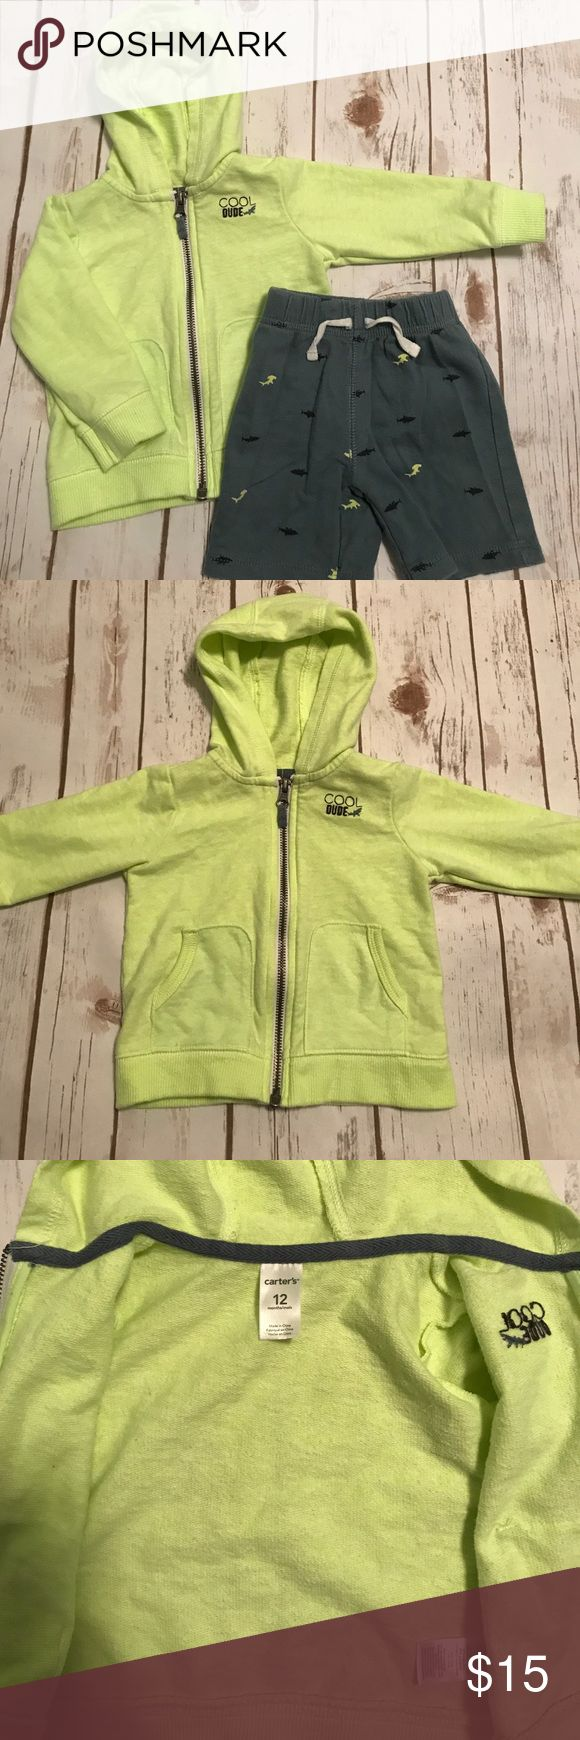 """Toddler Boy Carter's Shark Sweatshirt & Shorts Good condition- no holes, no stains or marks. The reason I'm listing as """"GOOD"""" instead of excellent is because the zipper works but is a little rough on the way down on the unzip. It zips up normally. But a it's a little rough on the way down. It works but I need to mention that. Color of Sweatshirt is a lime green color and shorts are gray. Smoke free home. Carter's Matching Sets"""